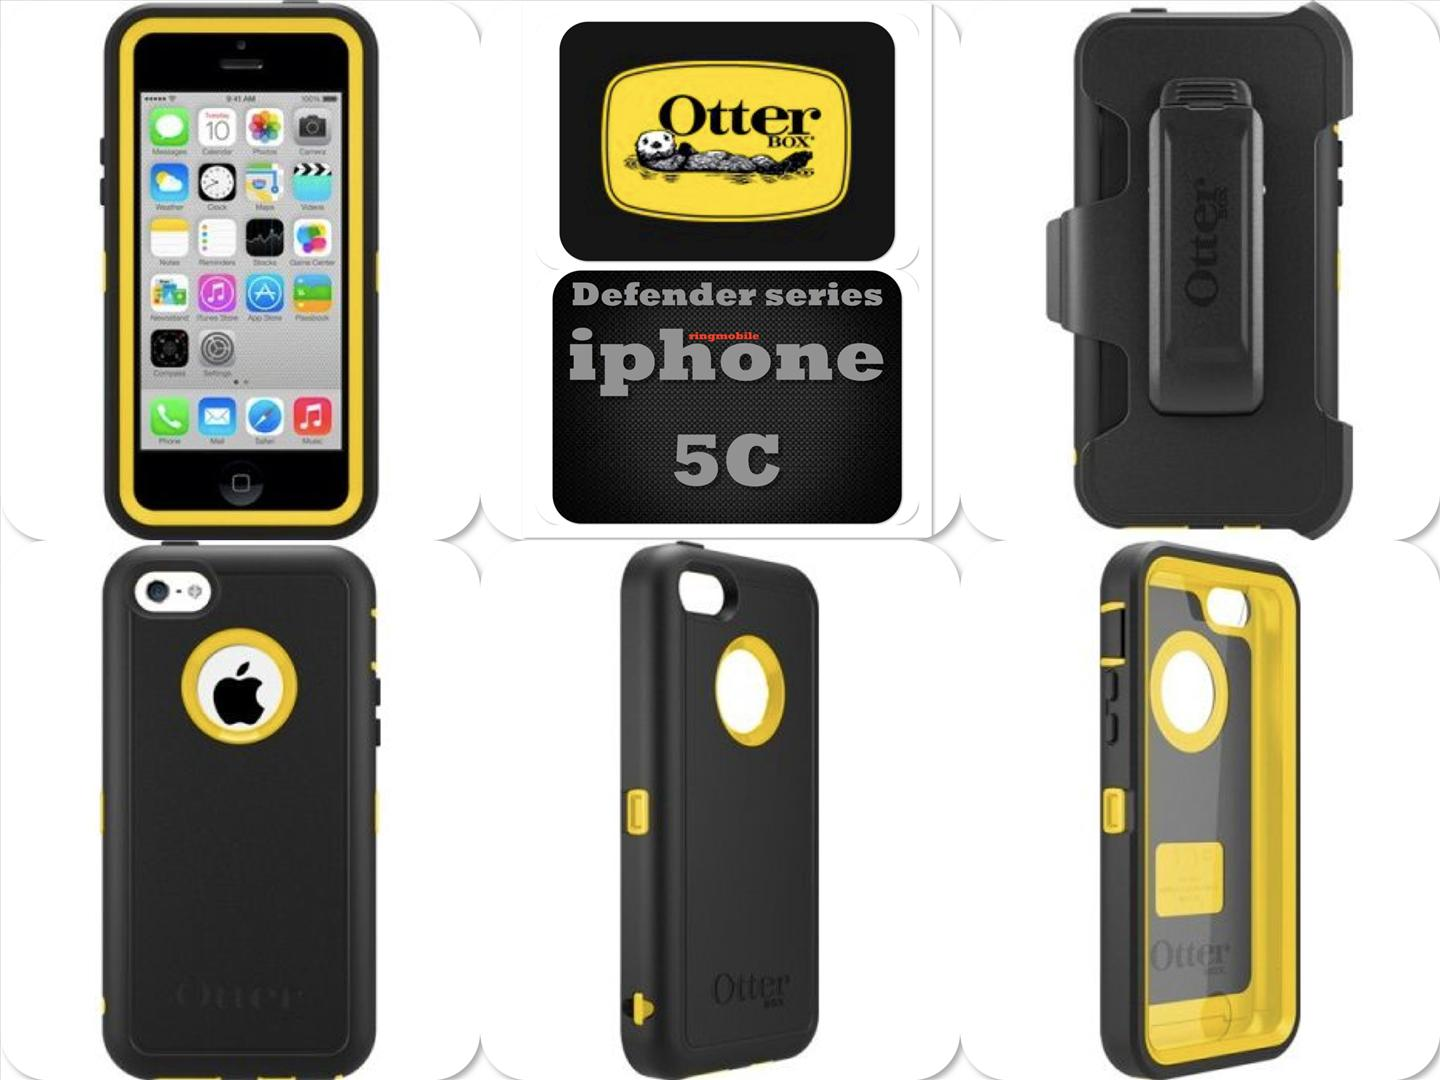 how to open otterbox defender series iphone 5